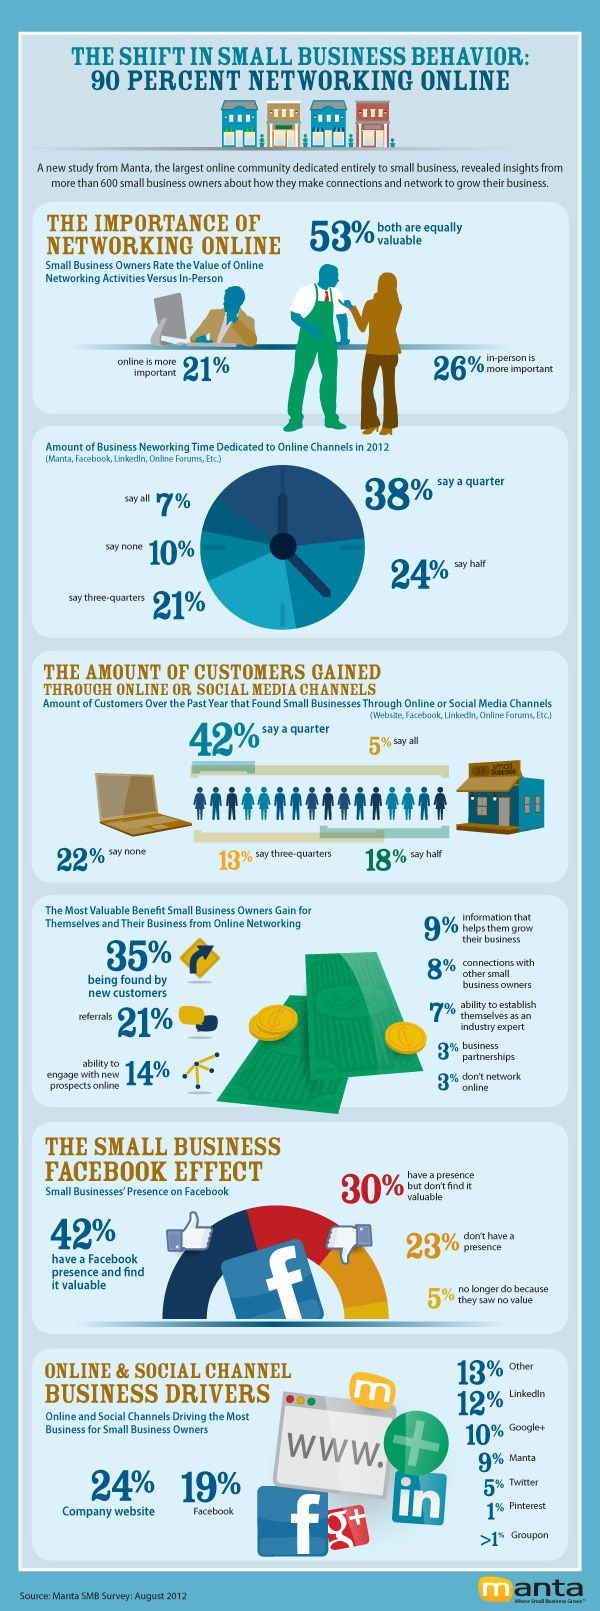 90% of small business use social media